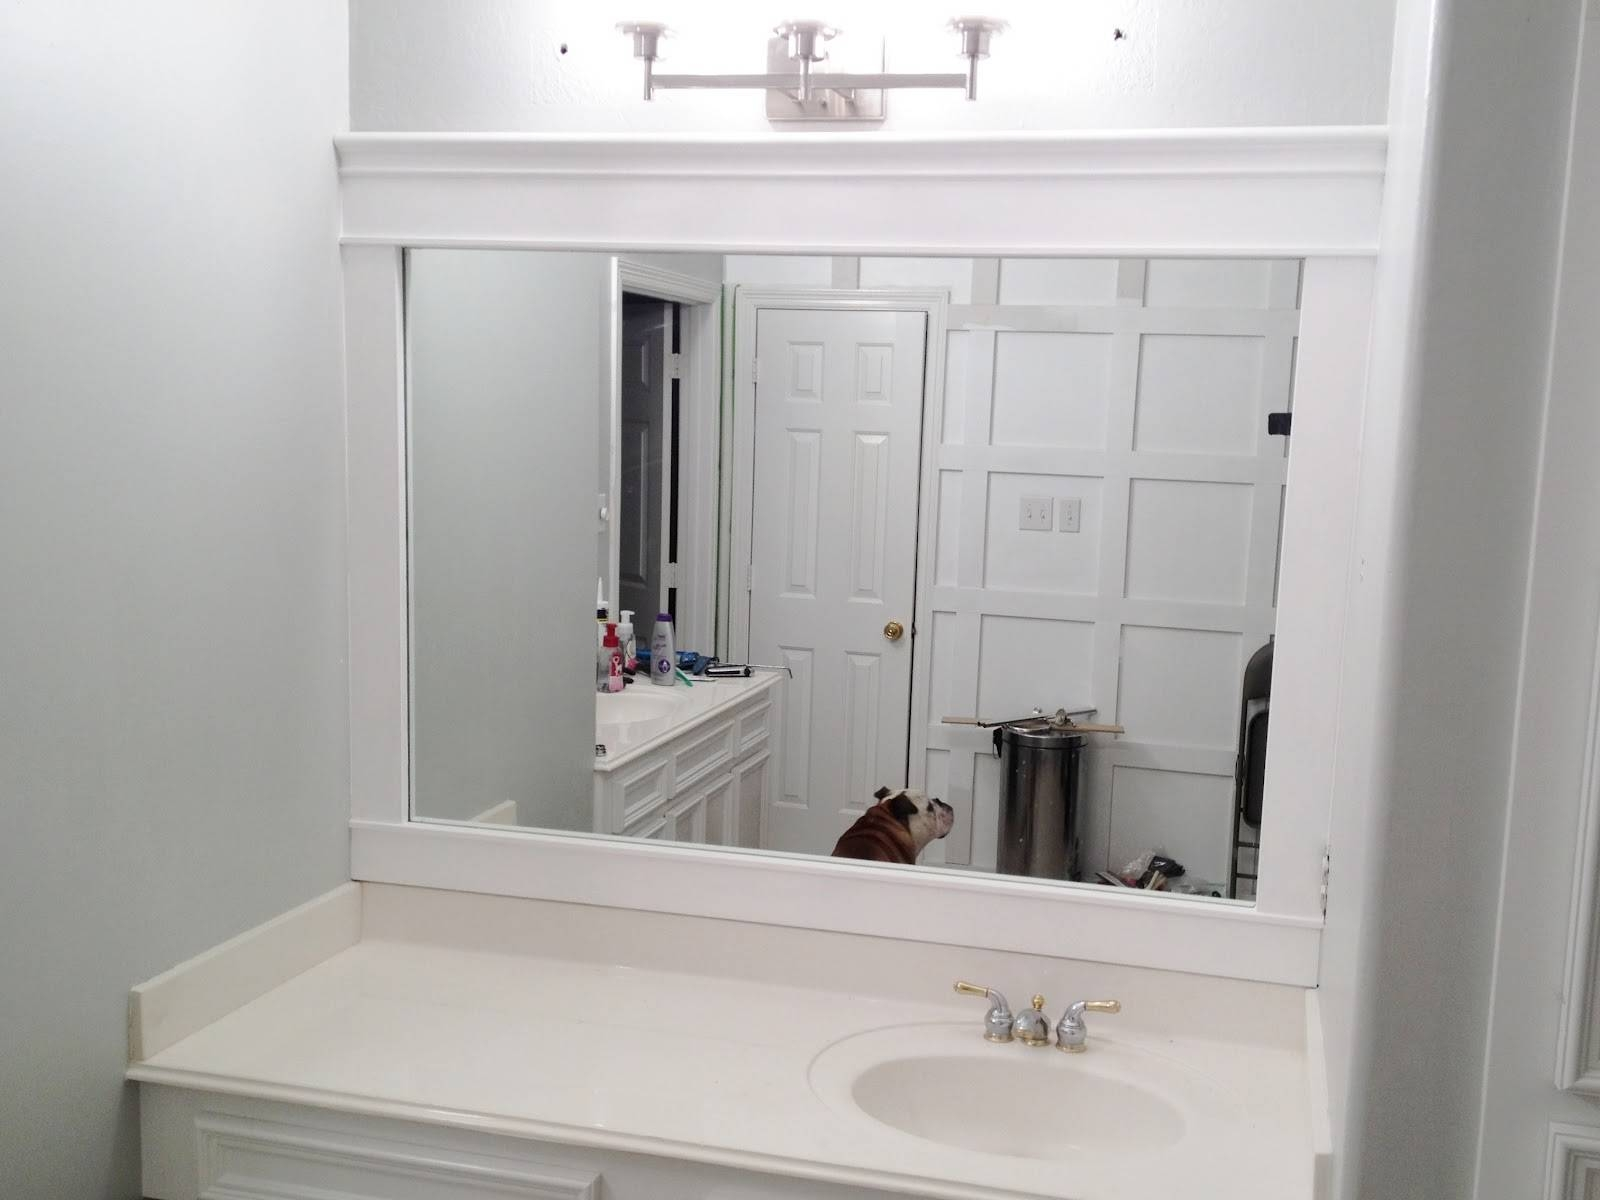 Oak Framed Bathroom Mirrors 118 Stunning Decor With Small Vanity within Large Oak Framed Mirrors (Image 11 of 25)